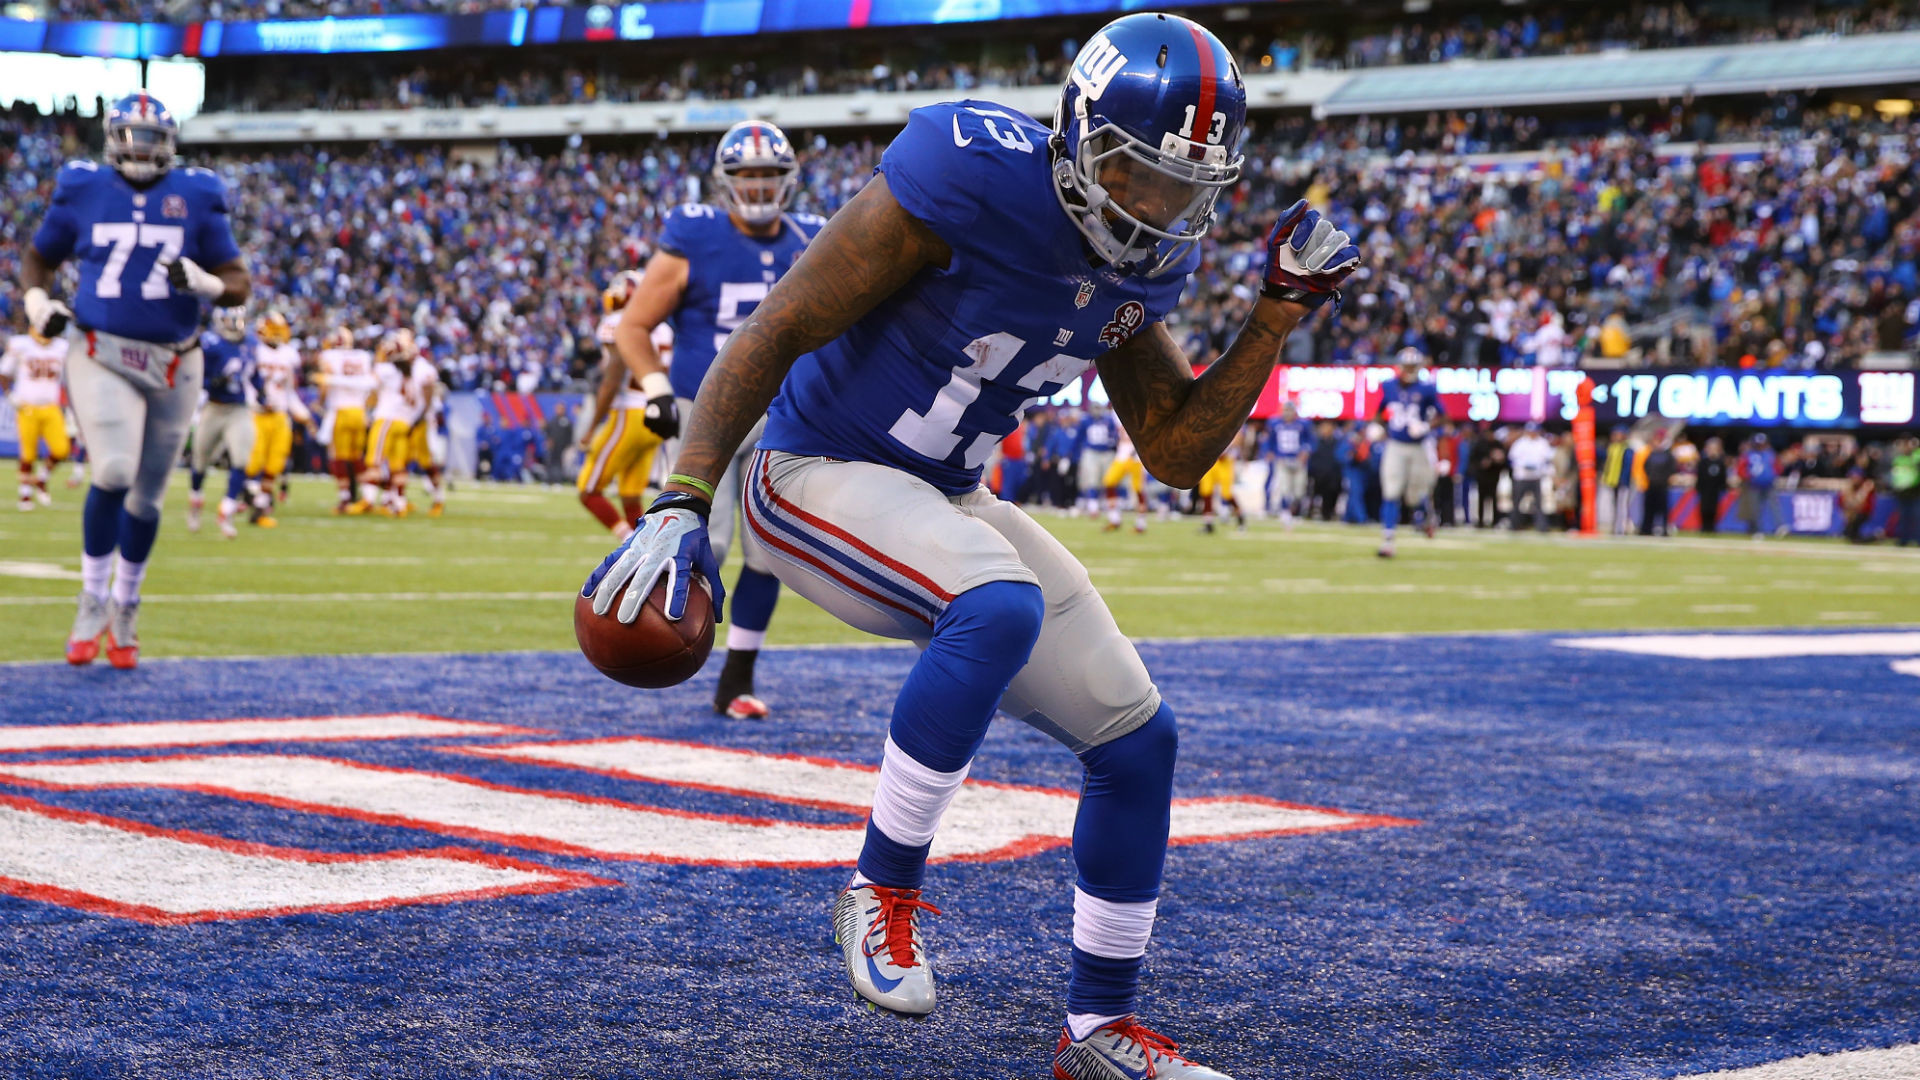 Odell beckham jr football wallpapers 69 pictures - Odell beckham jr wallpaper hd ...